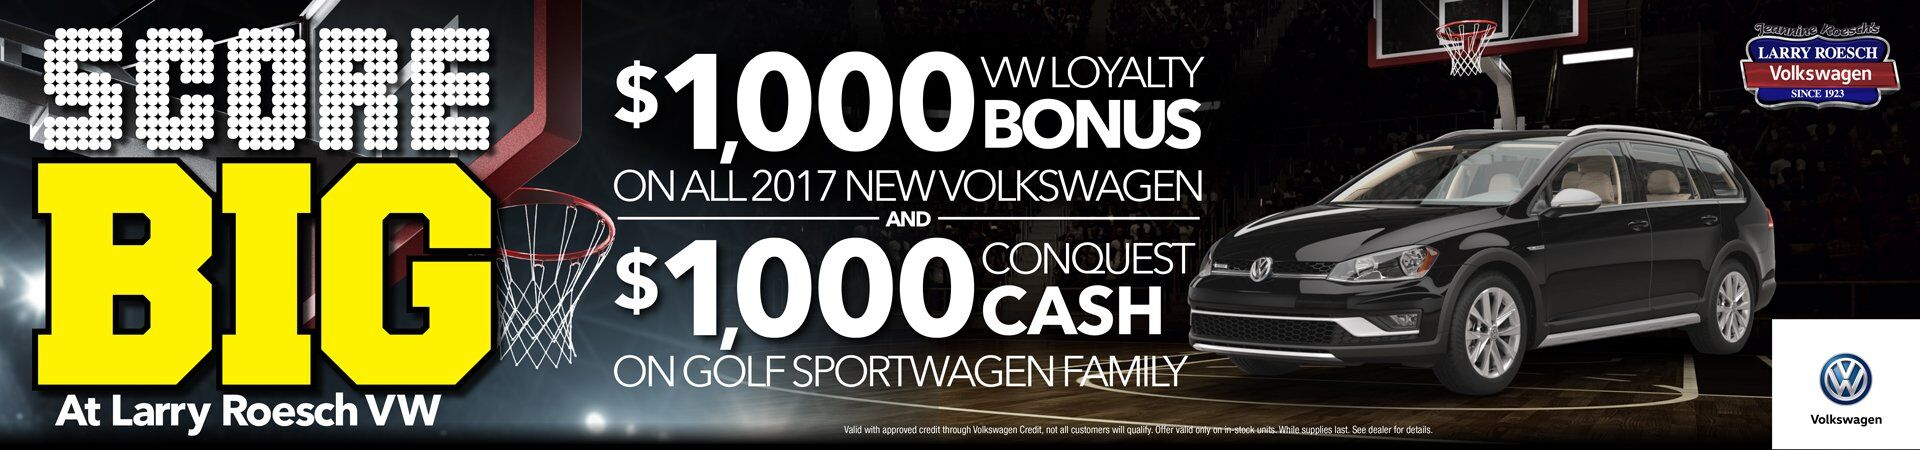 VW Loyalty